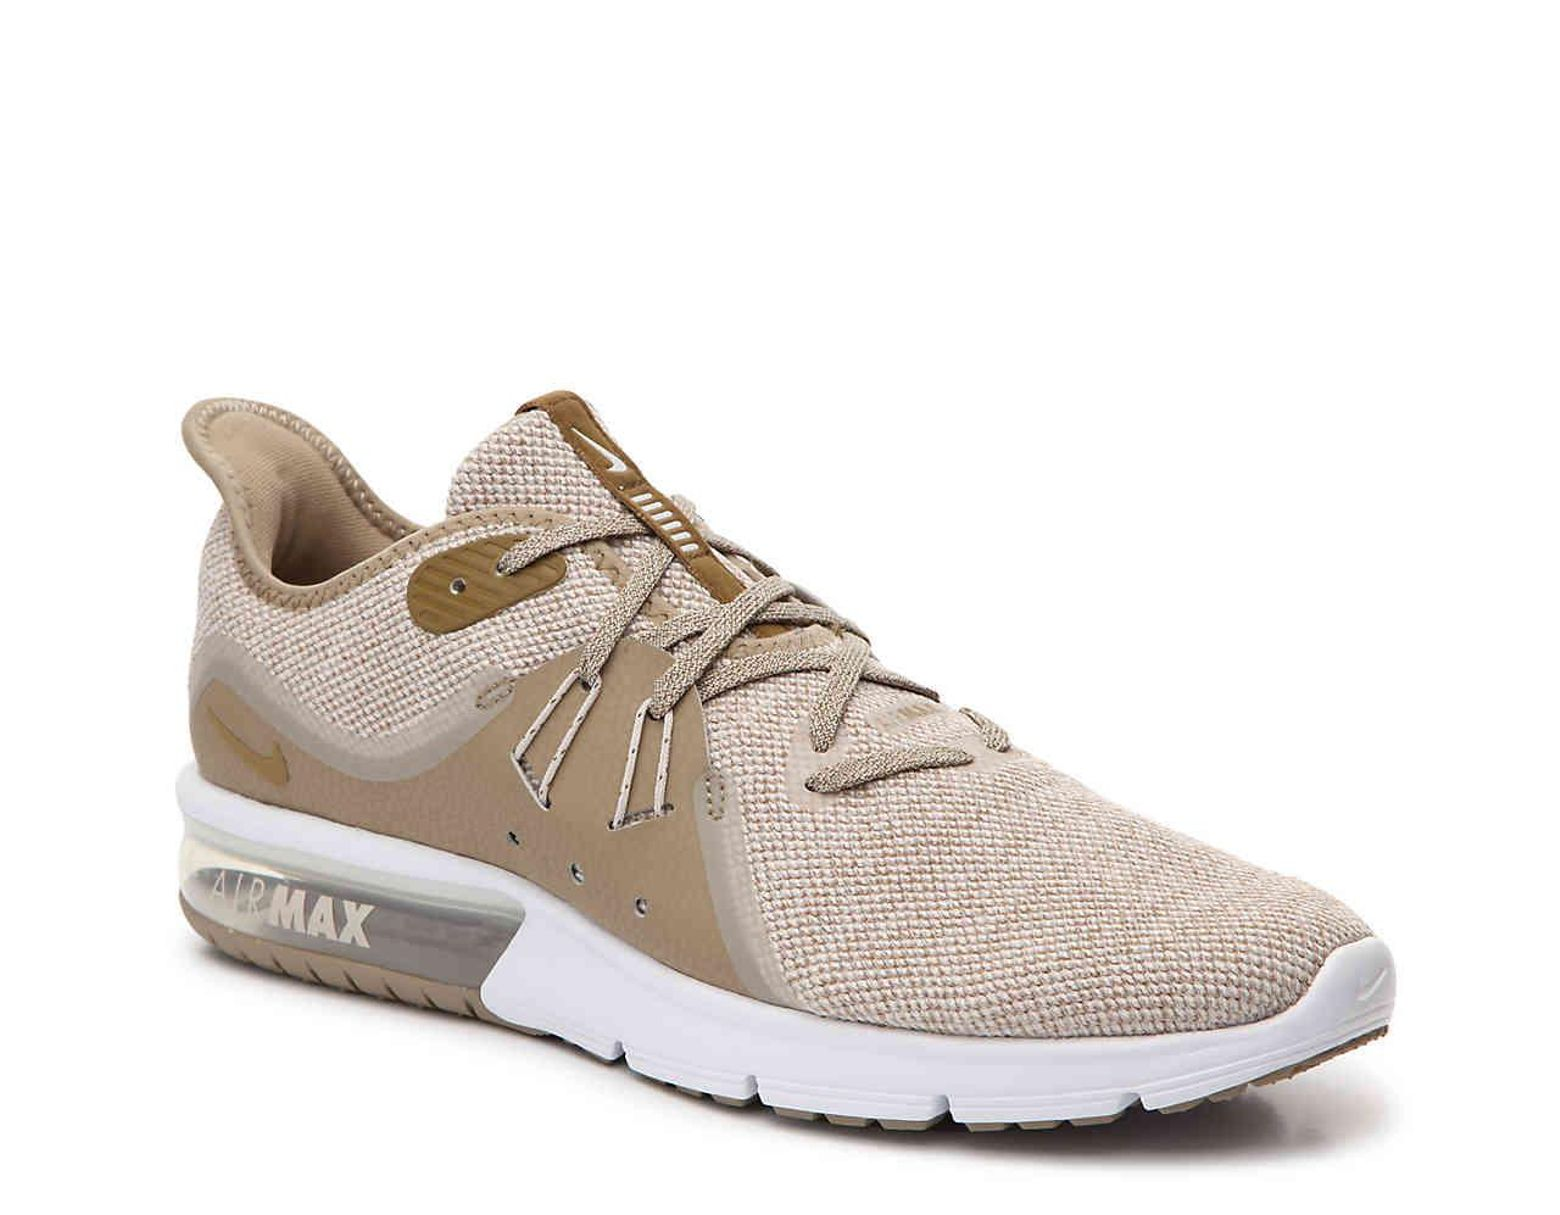 e01e7bc8e31d7 Nike Air Max Sequent 3 Performance Running Shoe in Natural for Men - Lyst